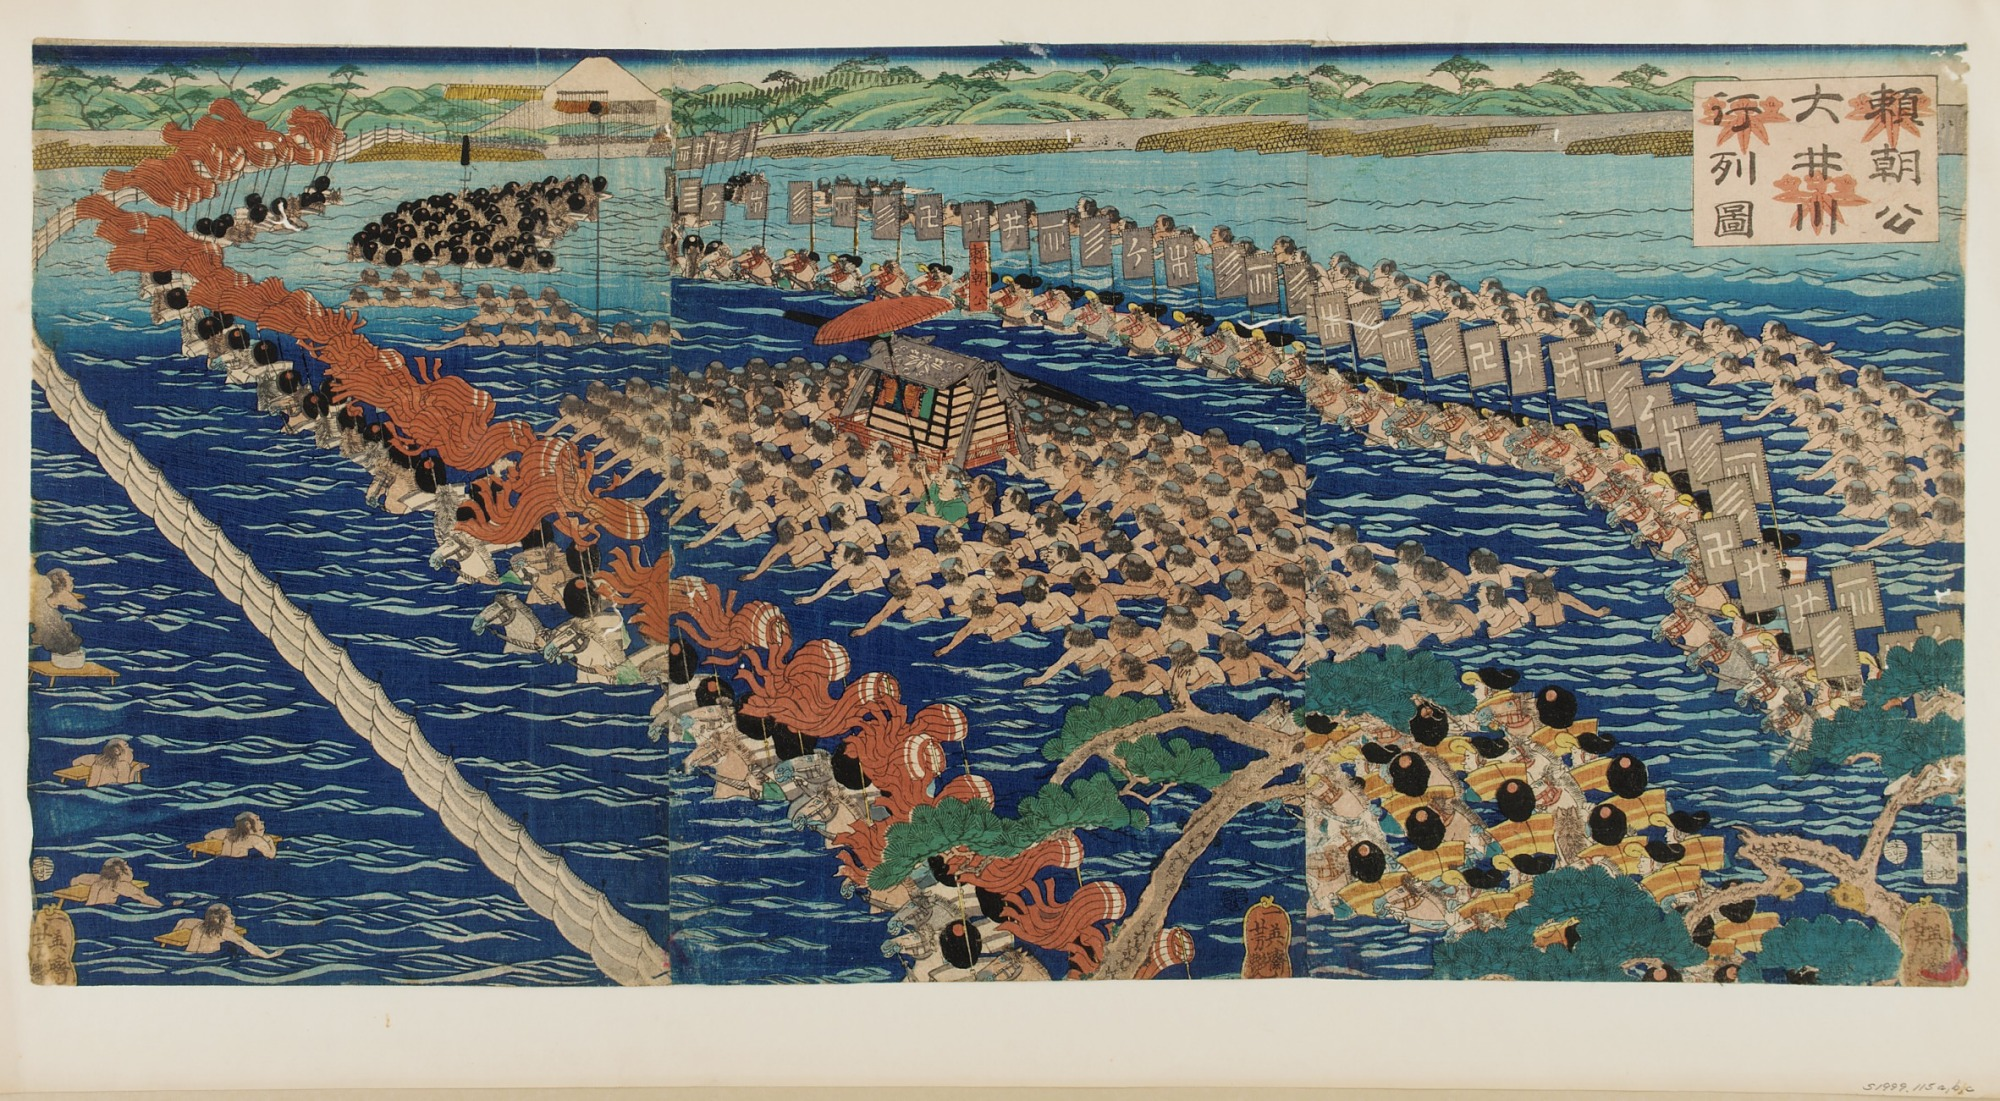 Minamoto no Yoritomo Crossing the Oi River